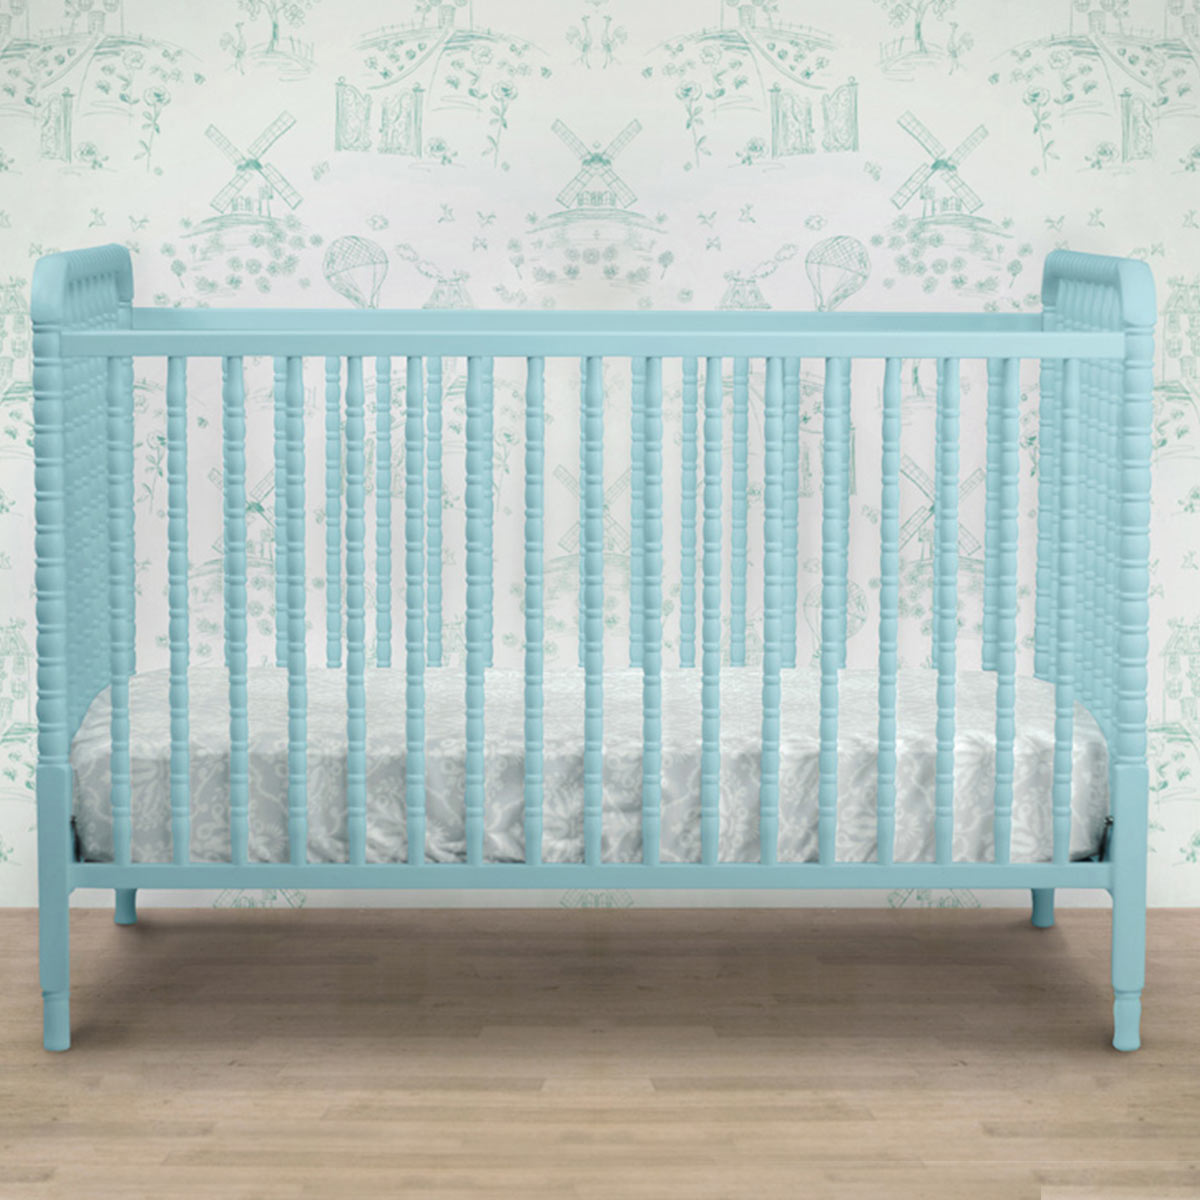 Contemporary white wooden jenny lind crib for your baby to sleep - Contemporary White Wooden Jenny Lind Crib For Your Baby To Sleep 57